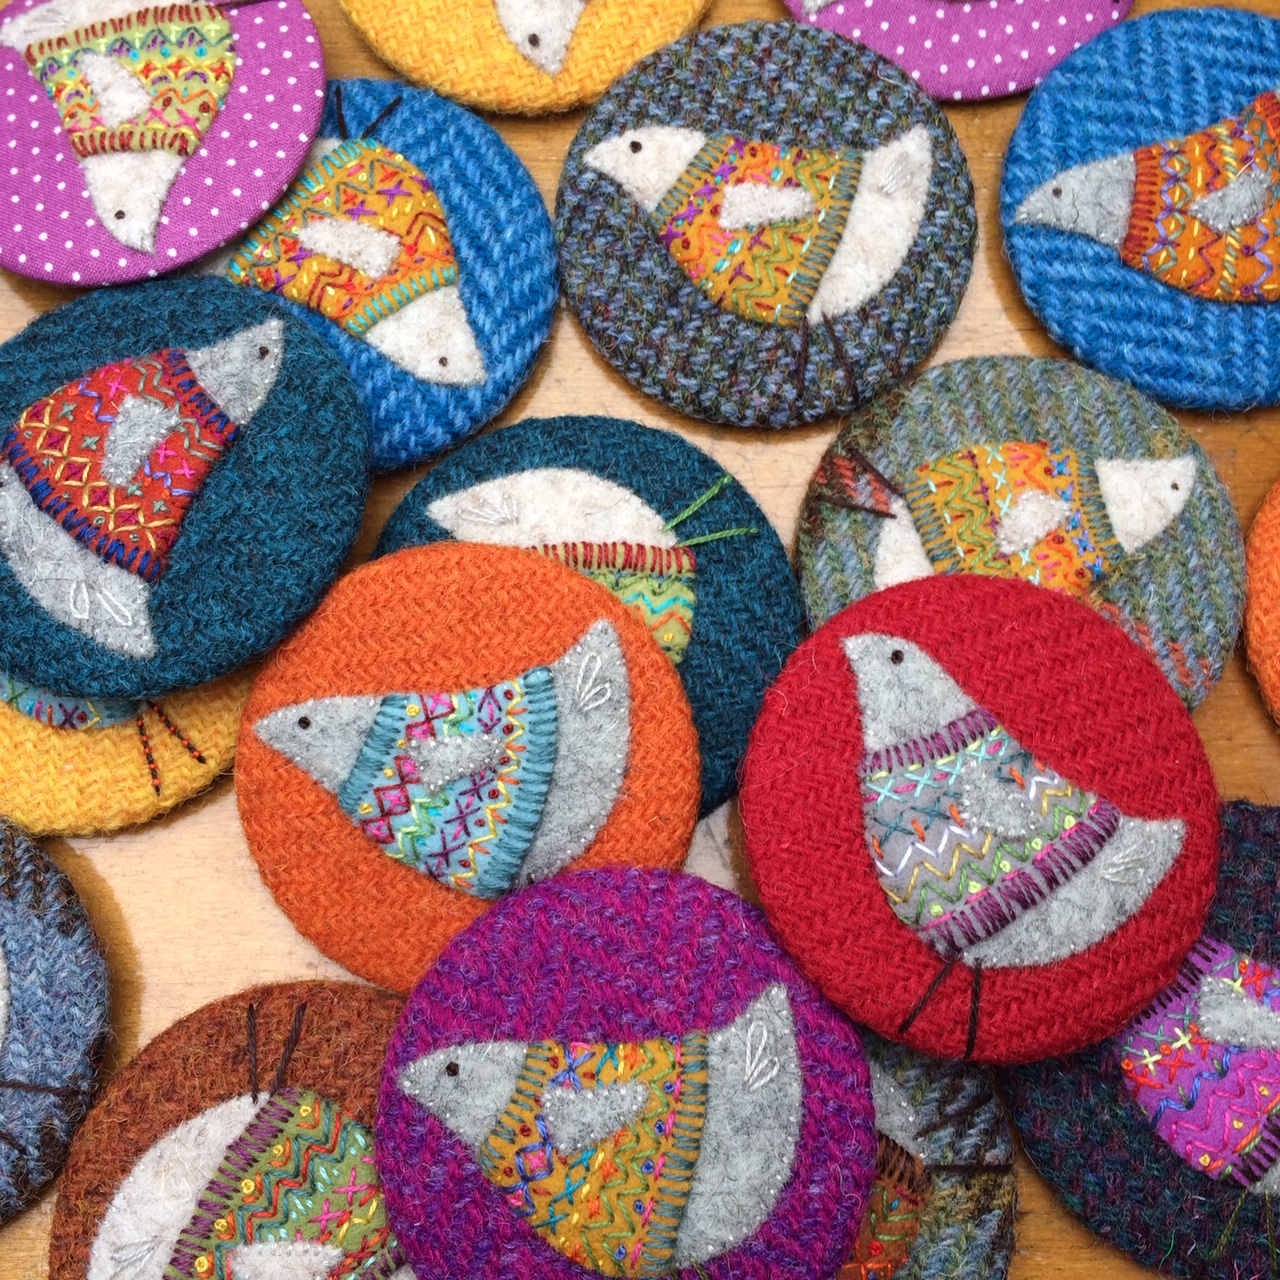 Stitchbirdie   Alongside her popular badges (look out for this years new design!) Lorna will be bringing the beautiful tweed pouches she makes in collaboration with Julia @woollenflower and for the first time at EYF is excited to be showcasing new hand stitched knitting inspired artworks!